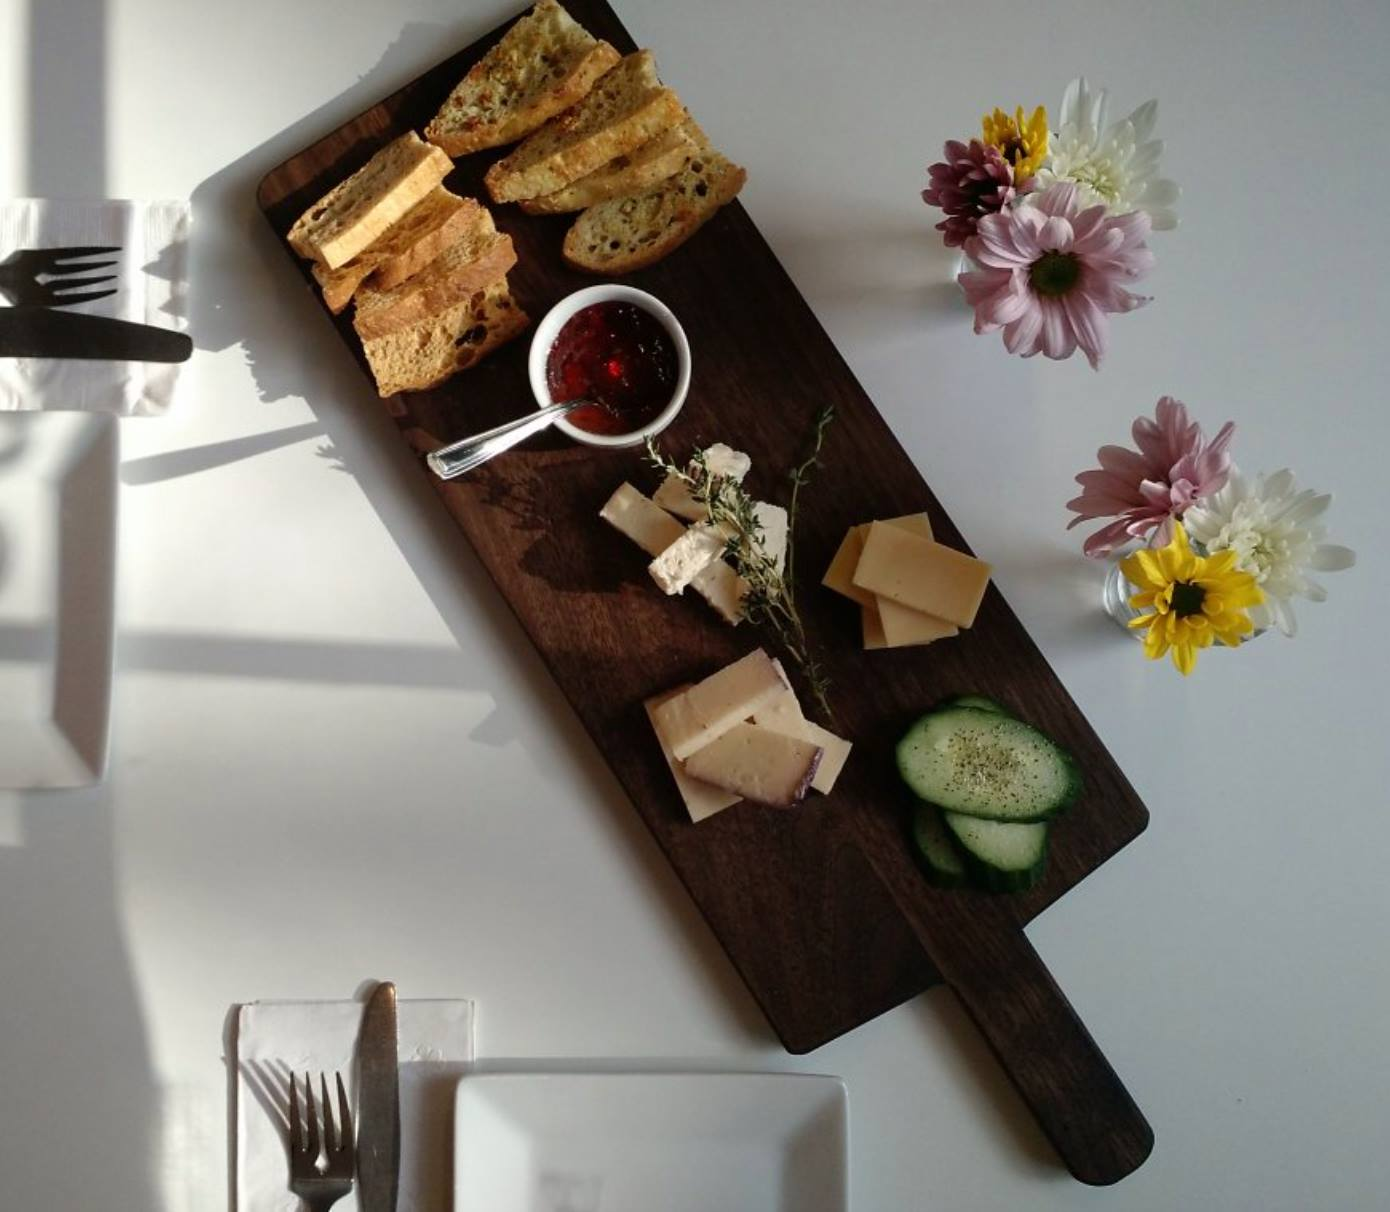 Copy of Copy of Copy of Cheese boards will be large enough for 8 guests...but look this beautiful!